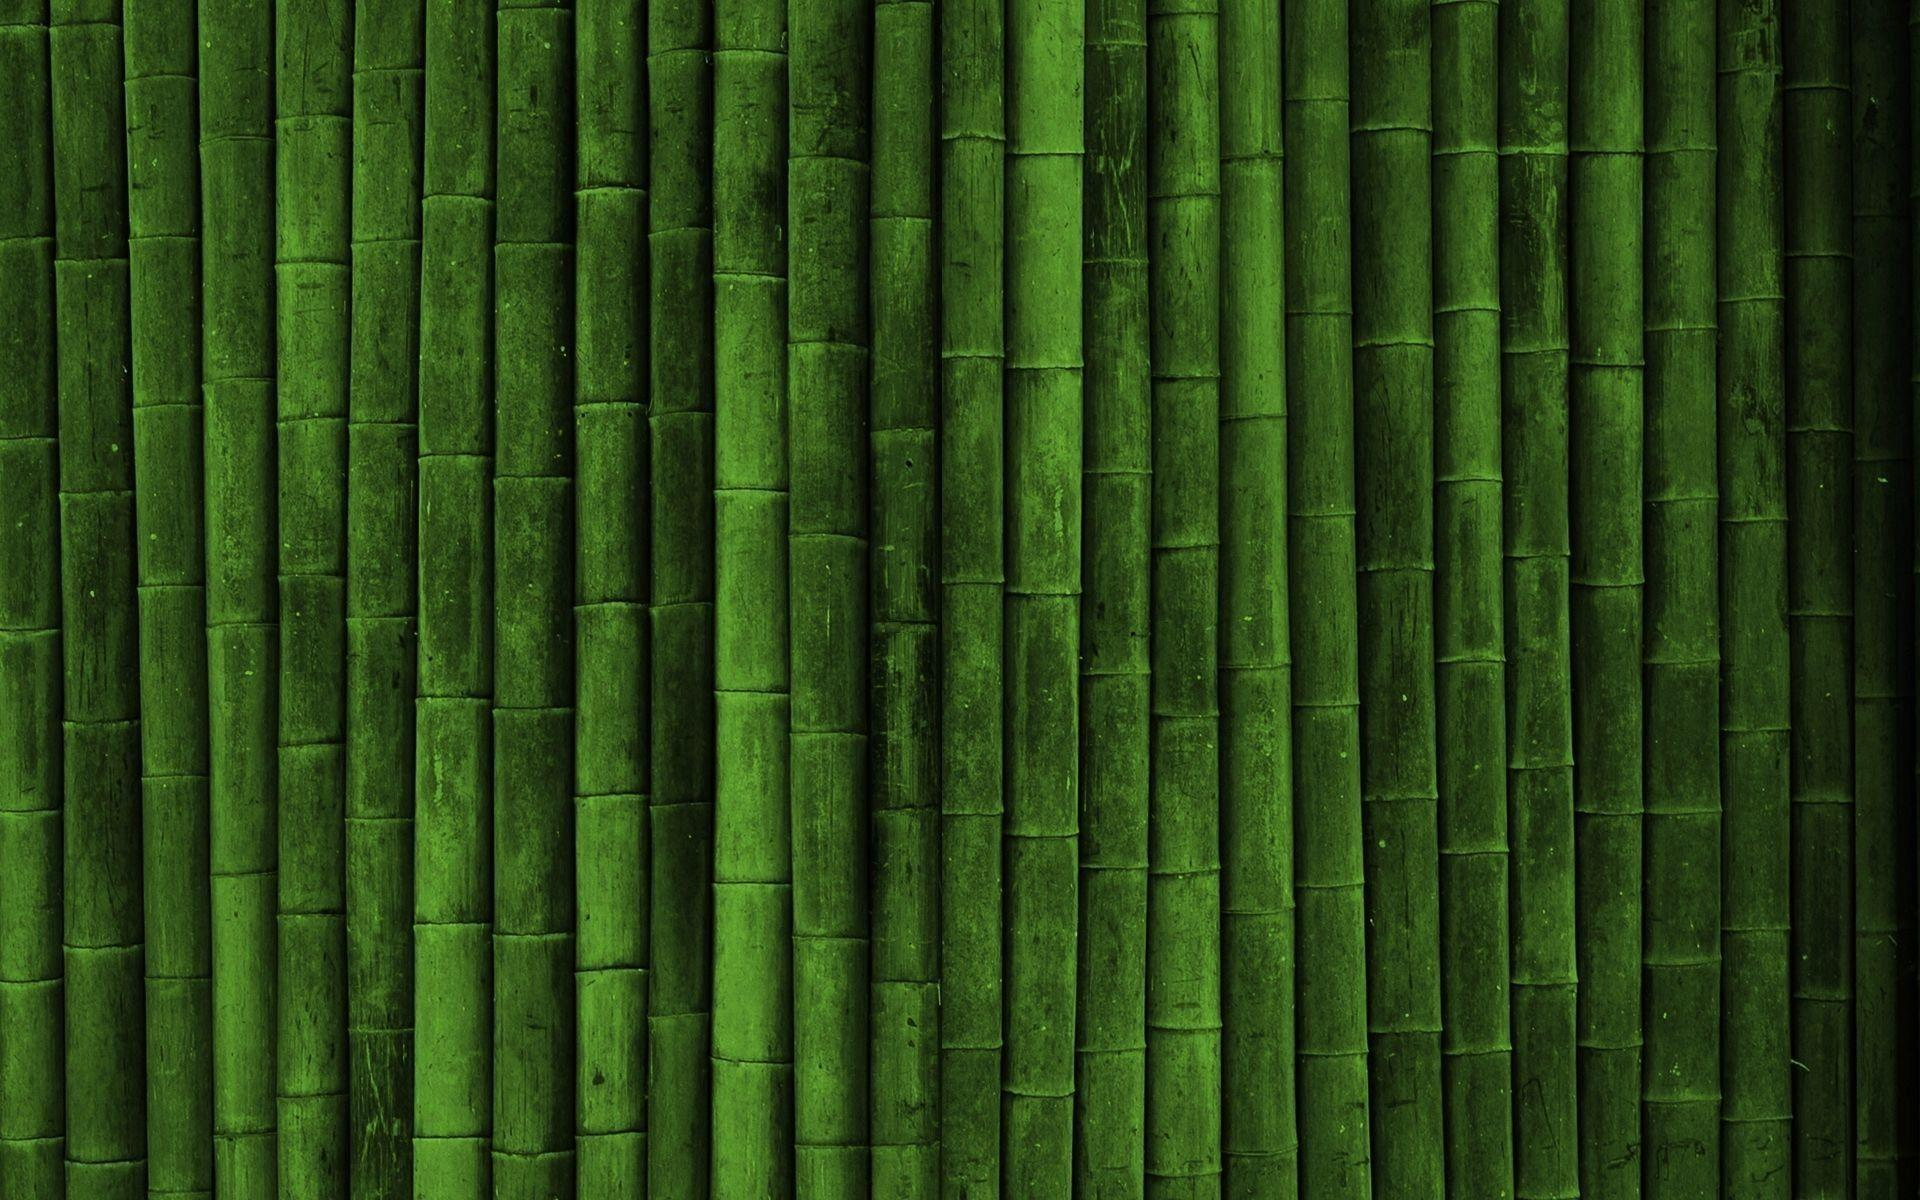 bamboo wallpaper by doantrangnguyen - photo #5